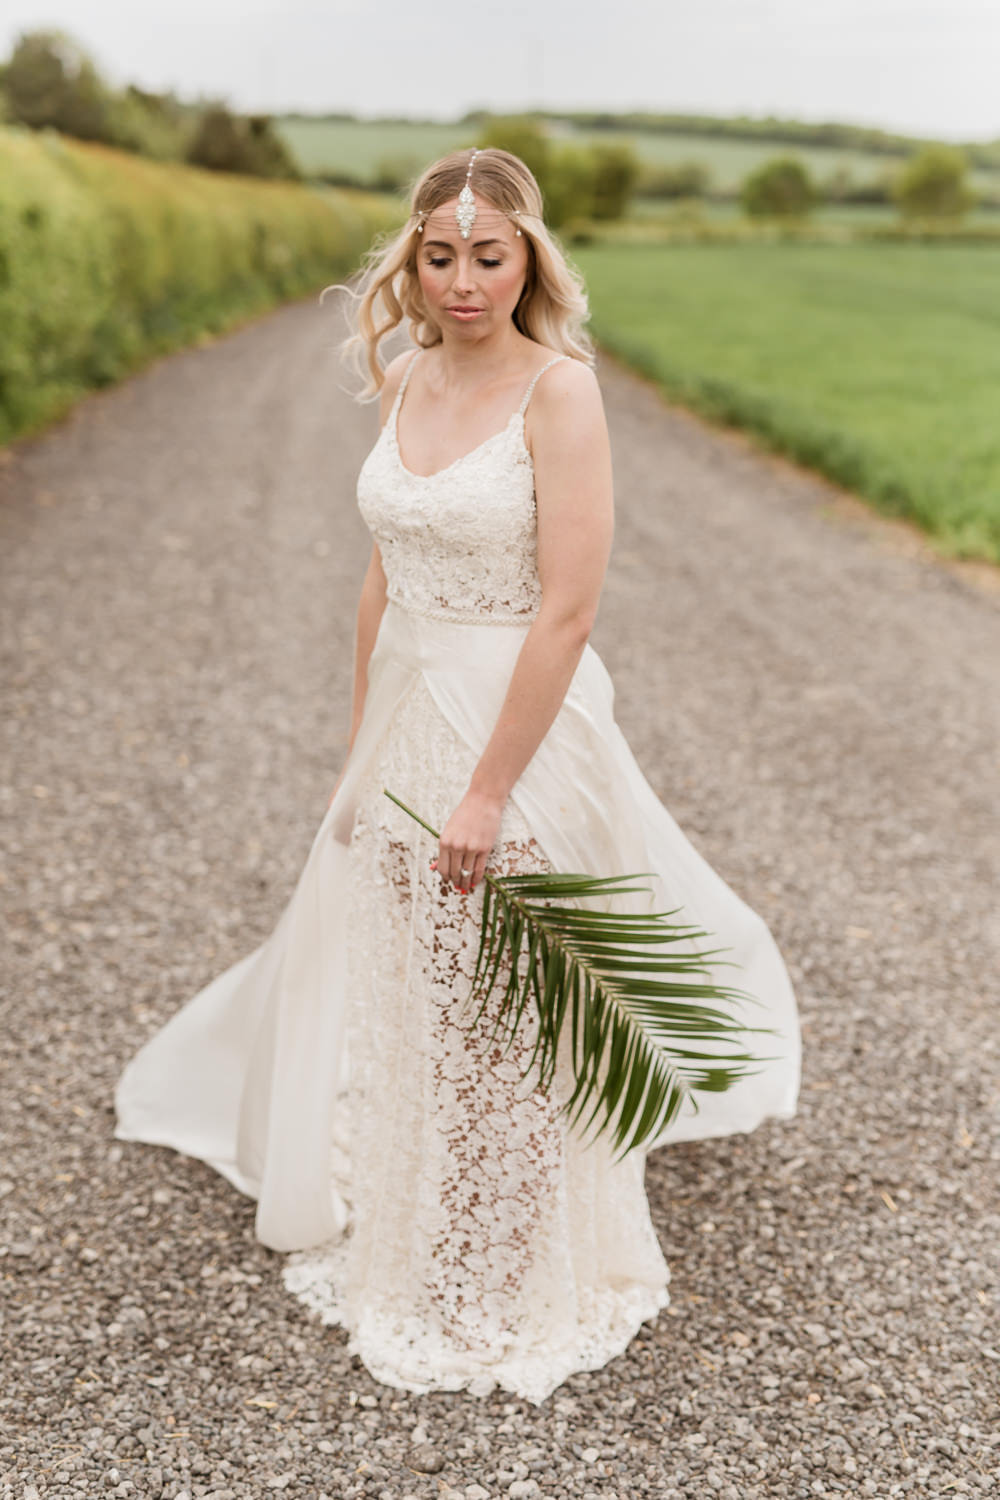 Dress Gown Bride Bridal Veil Lace Tropical Boho Countryside Wedding Ideas Sarah Brookes Photography